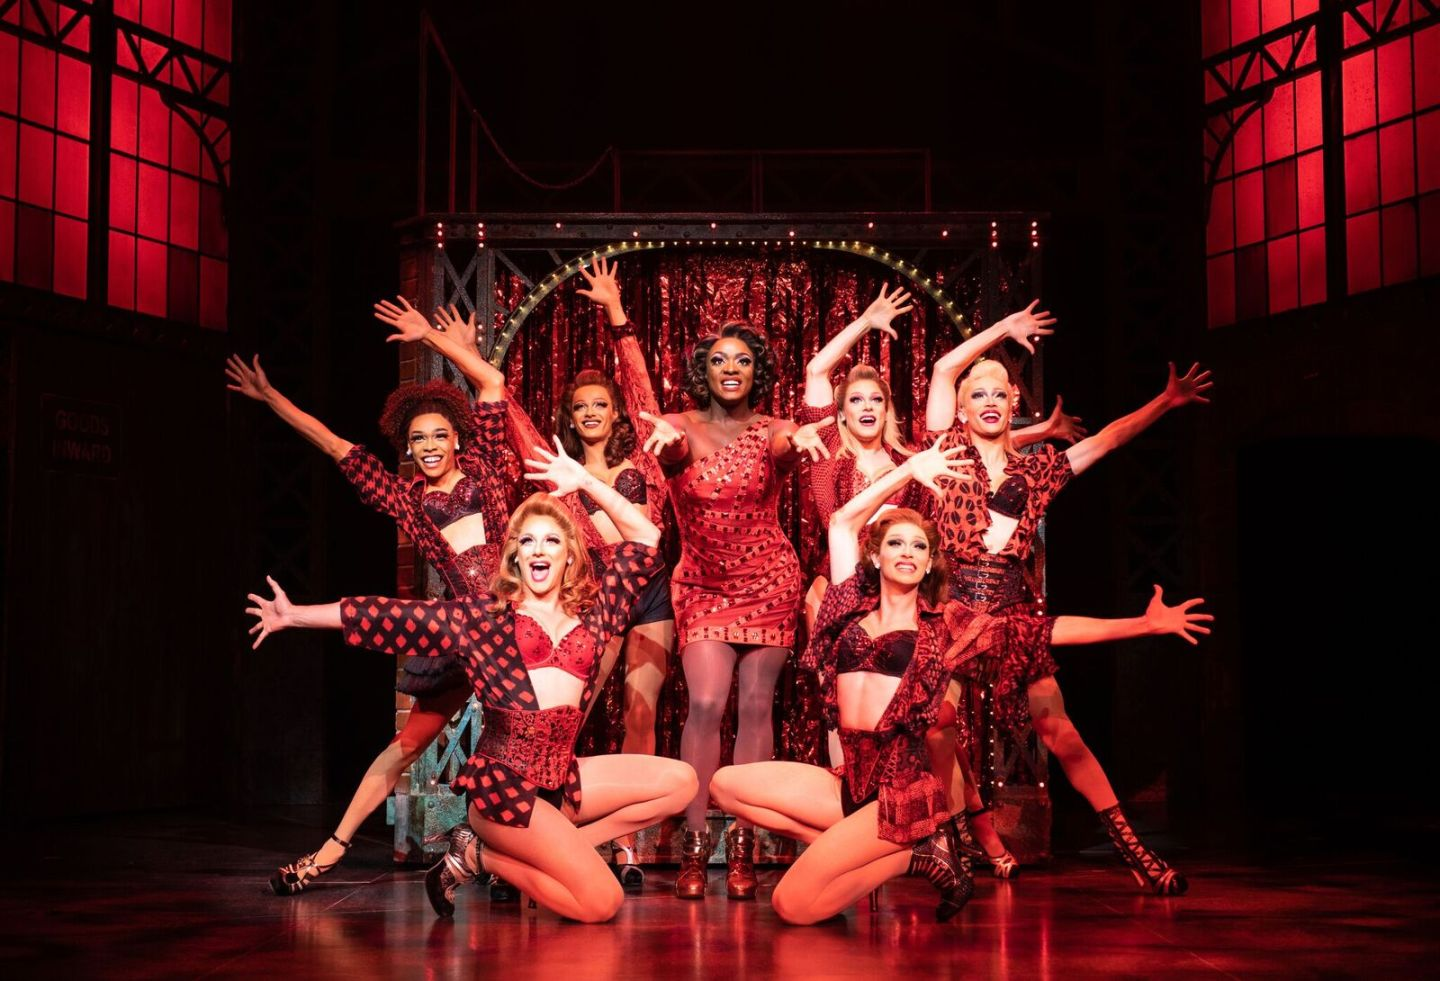 jLxc5Wrc - Kinky Boots Wows At Sunderland Empire